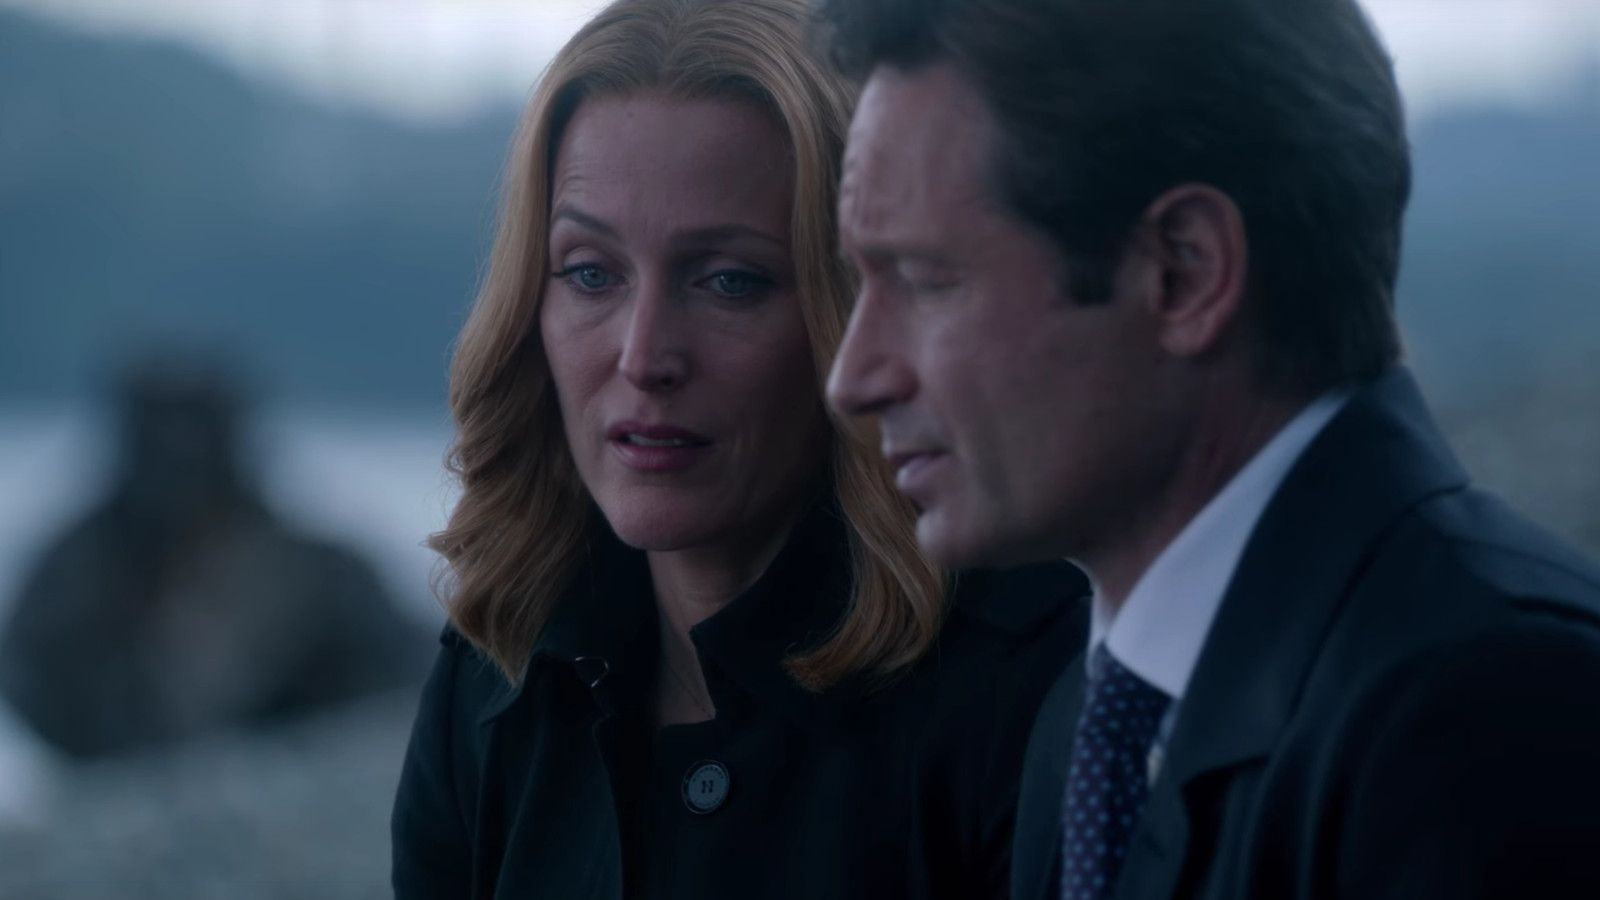 The X-Files is coming back for an 11th season